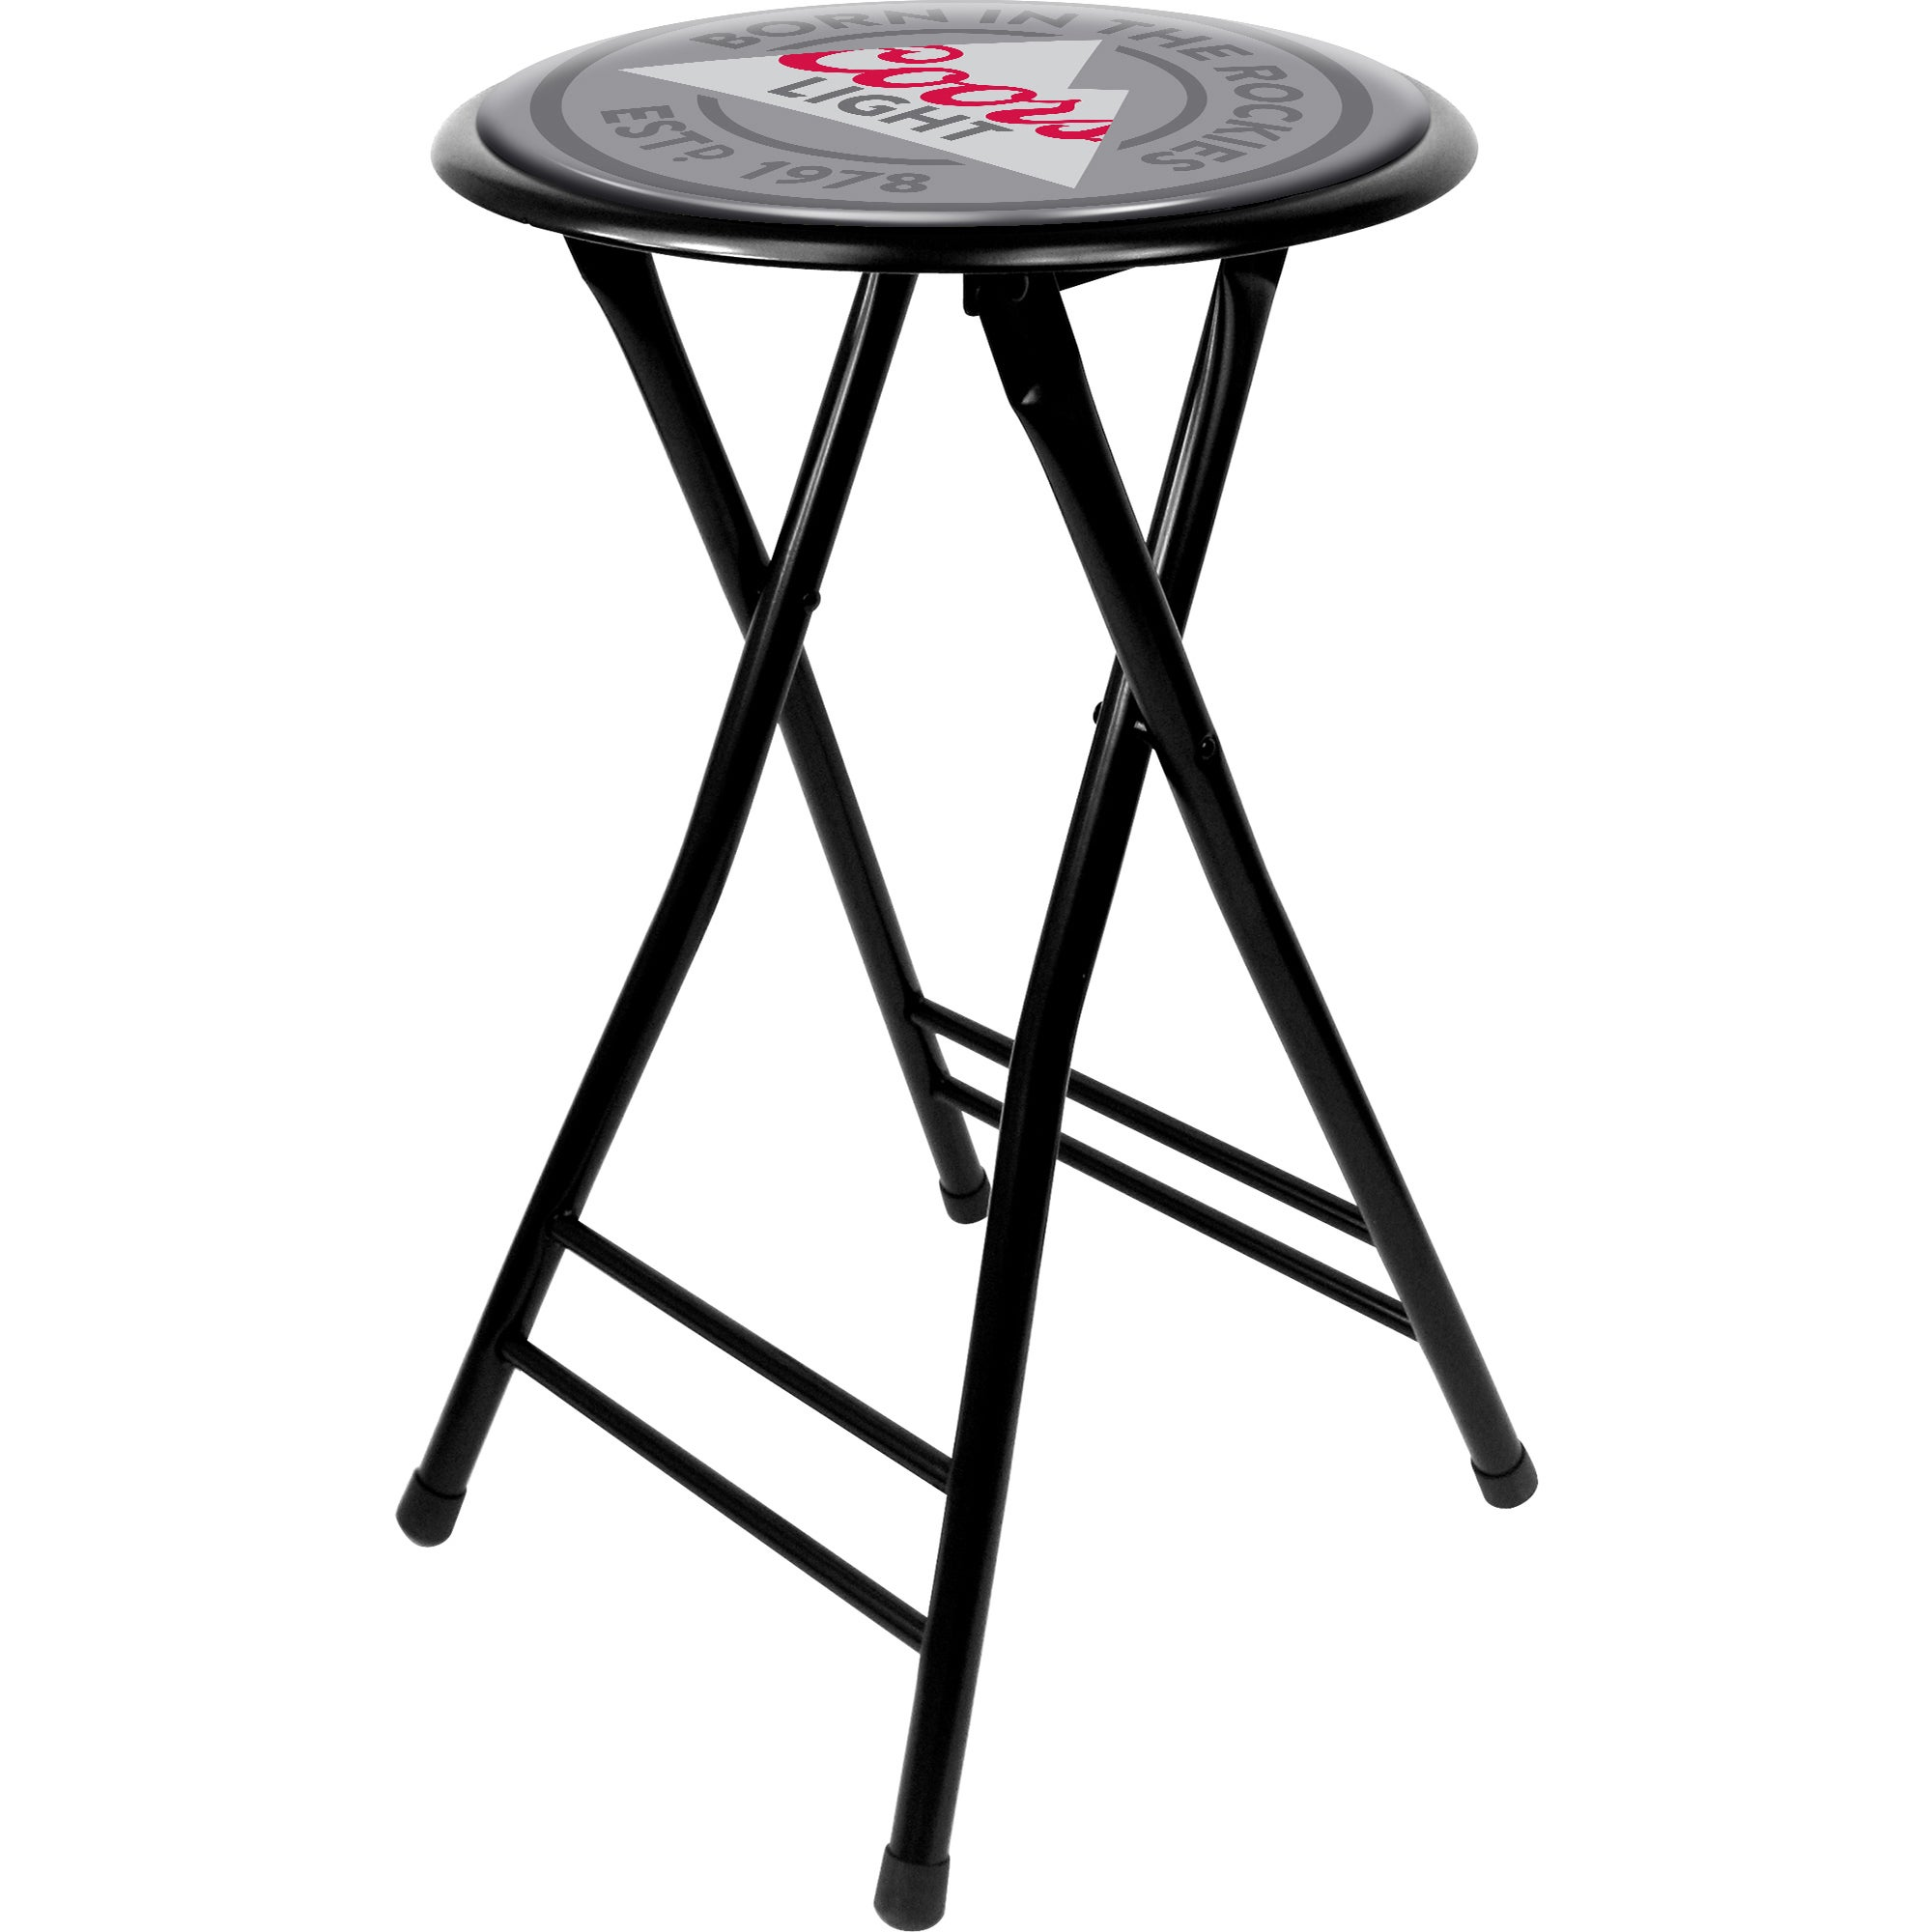 Trademark Coors Light 24-inch Cushioned Folding Stool (24...